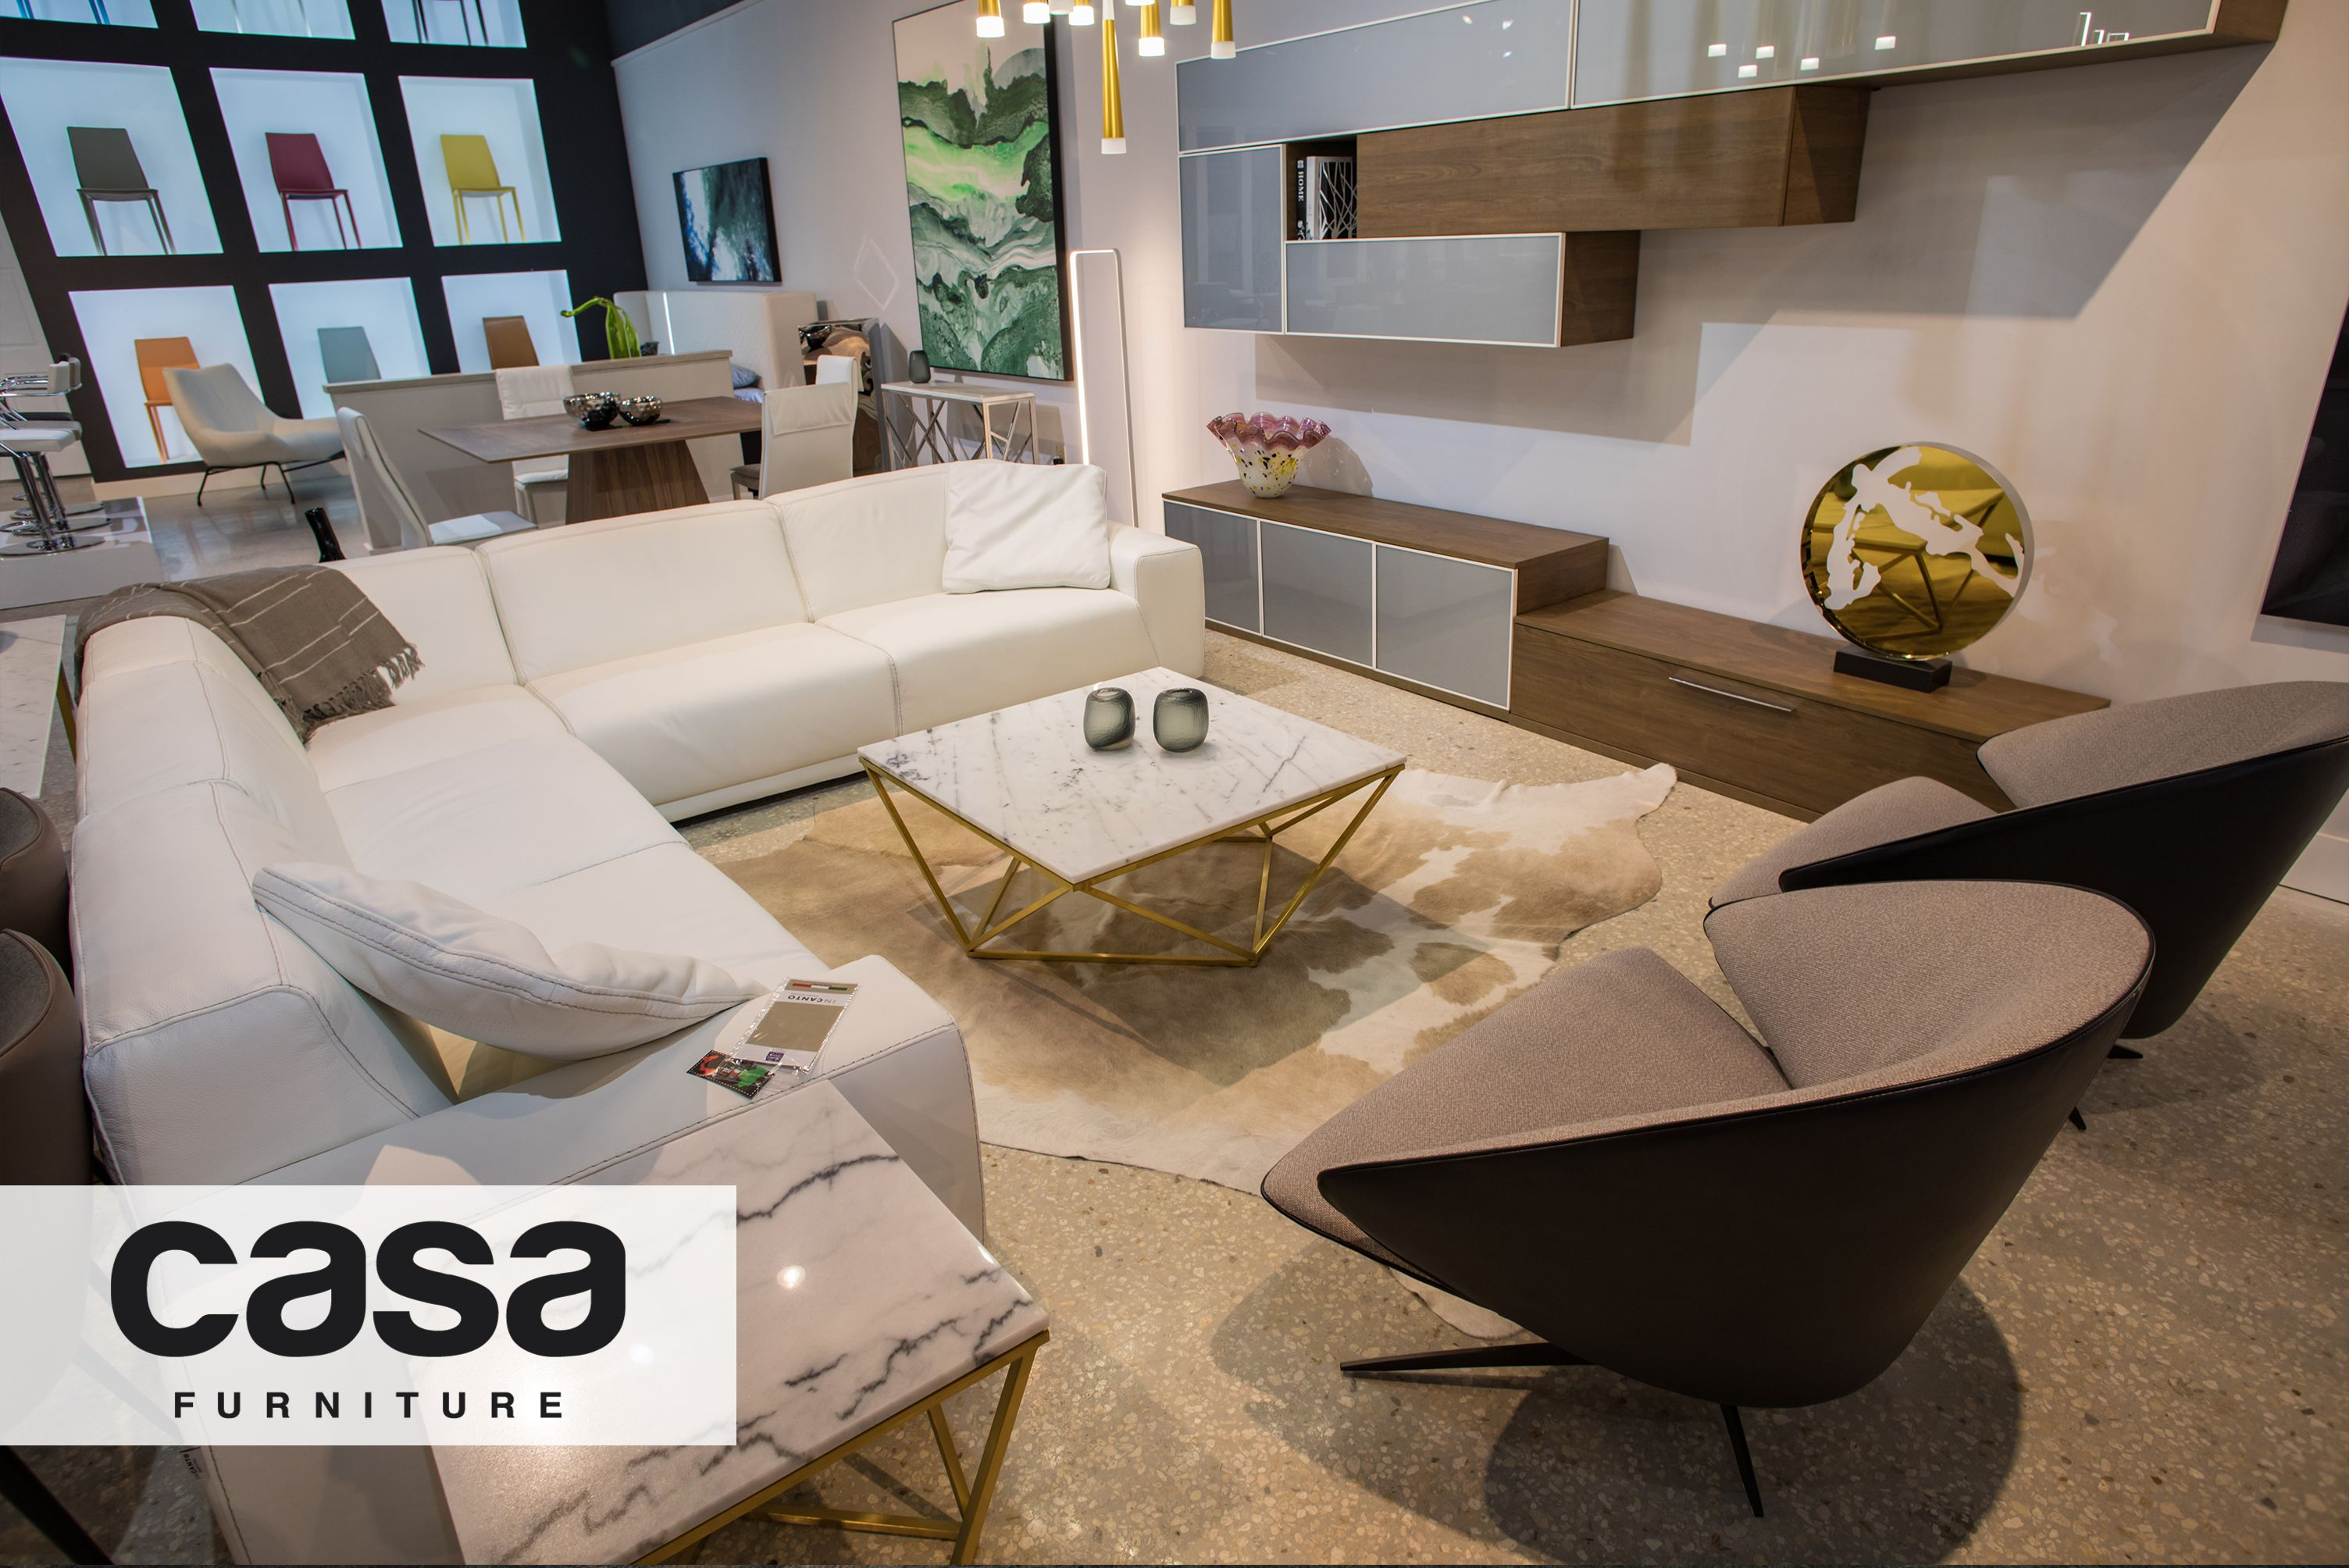 Casa Furniture Offers The Best Contemporary And Modern